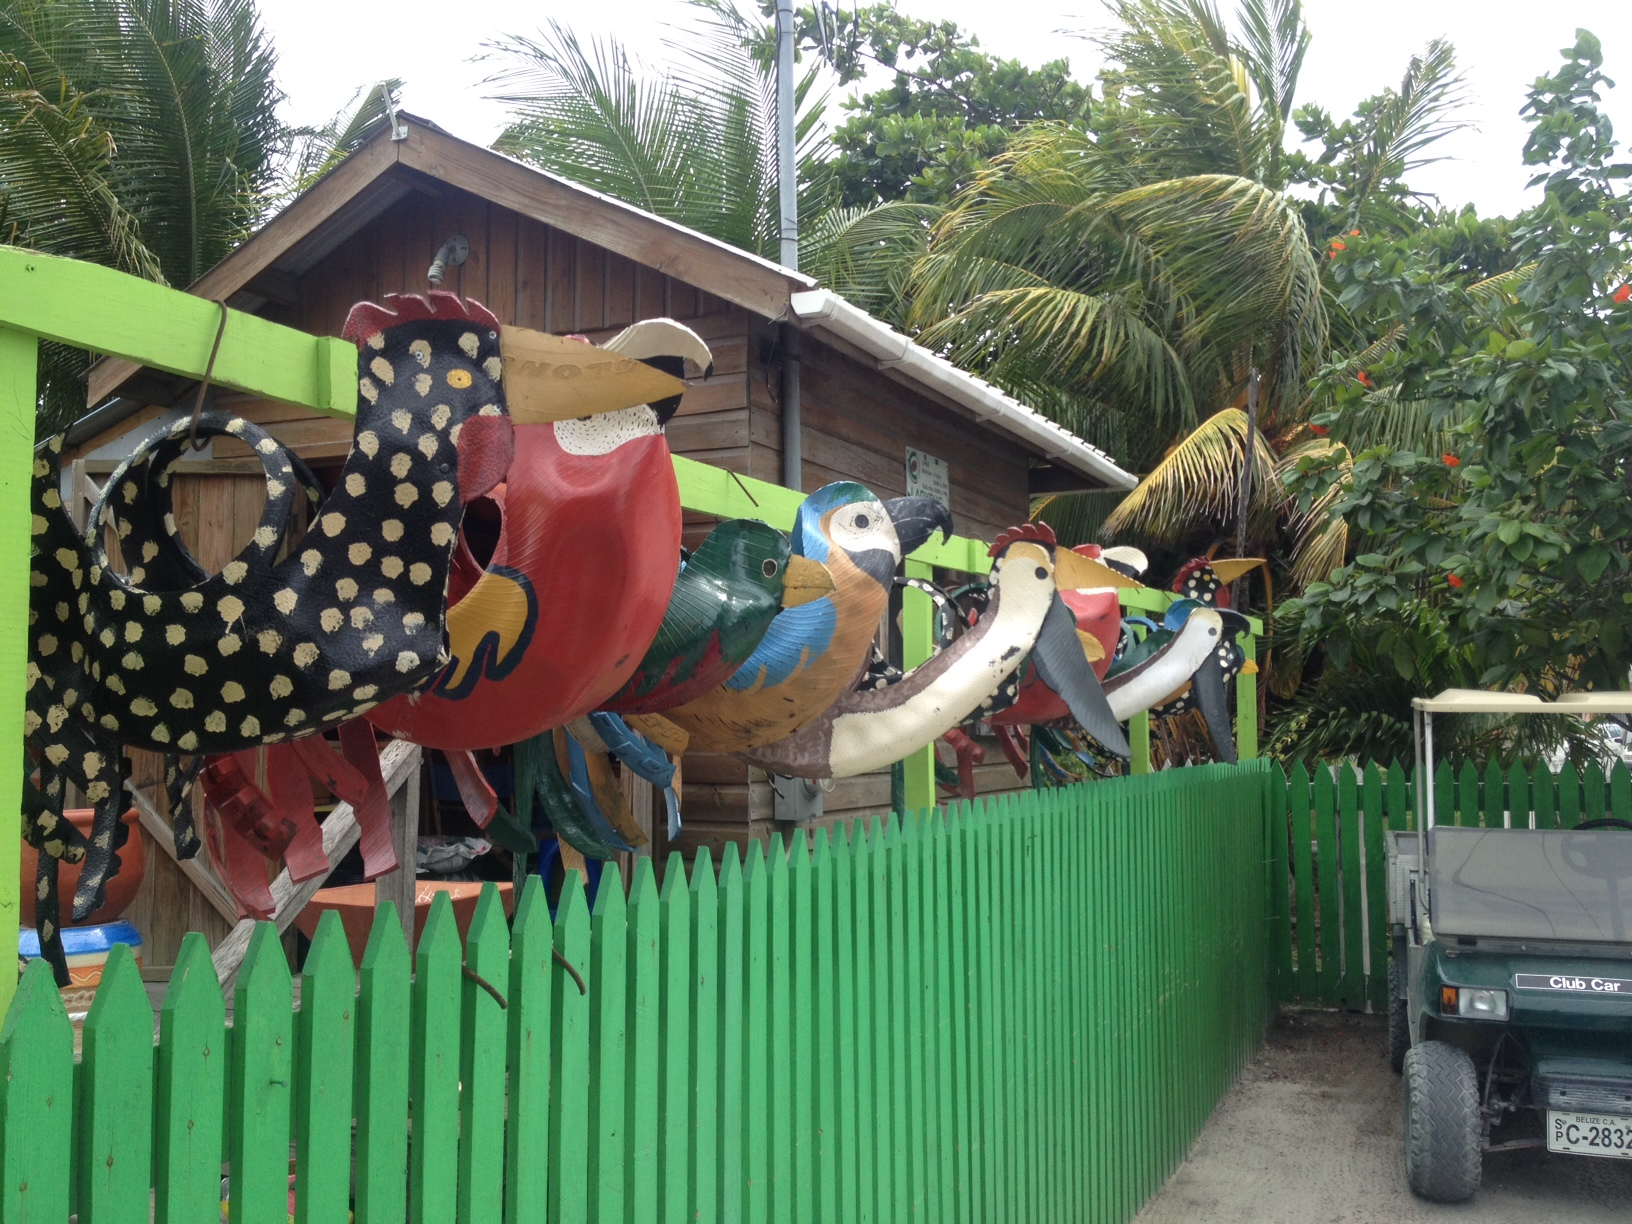 A Flock Of Hanging Planters Roost On The Fence At Ladybug Nursery In San  Pedro,